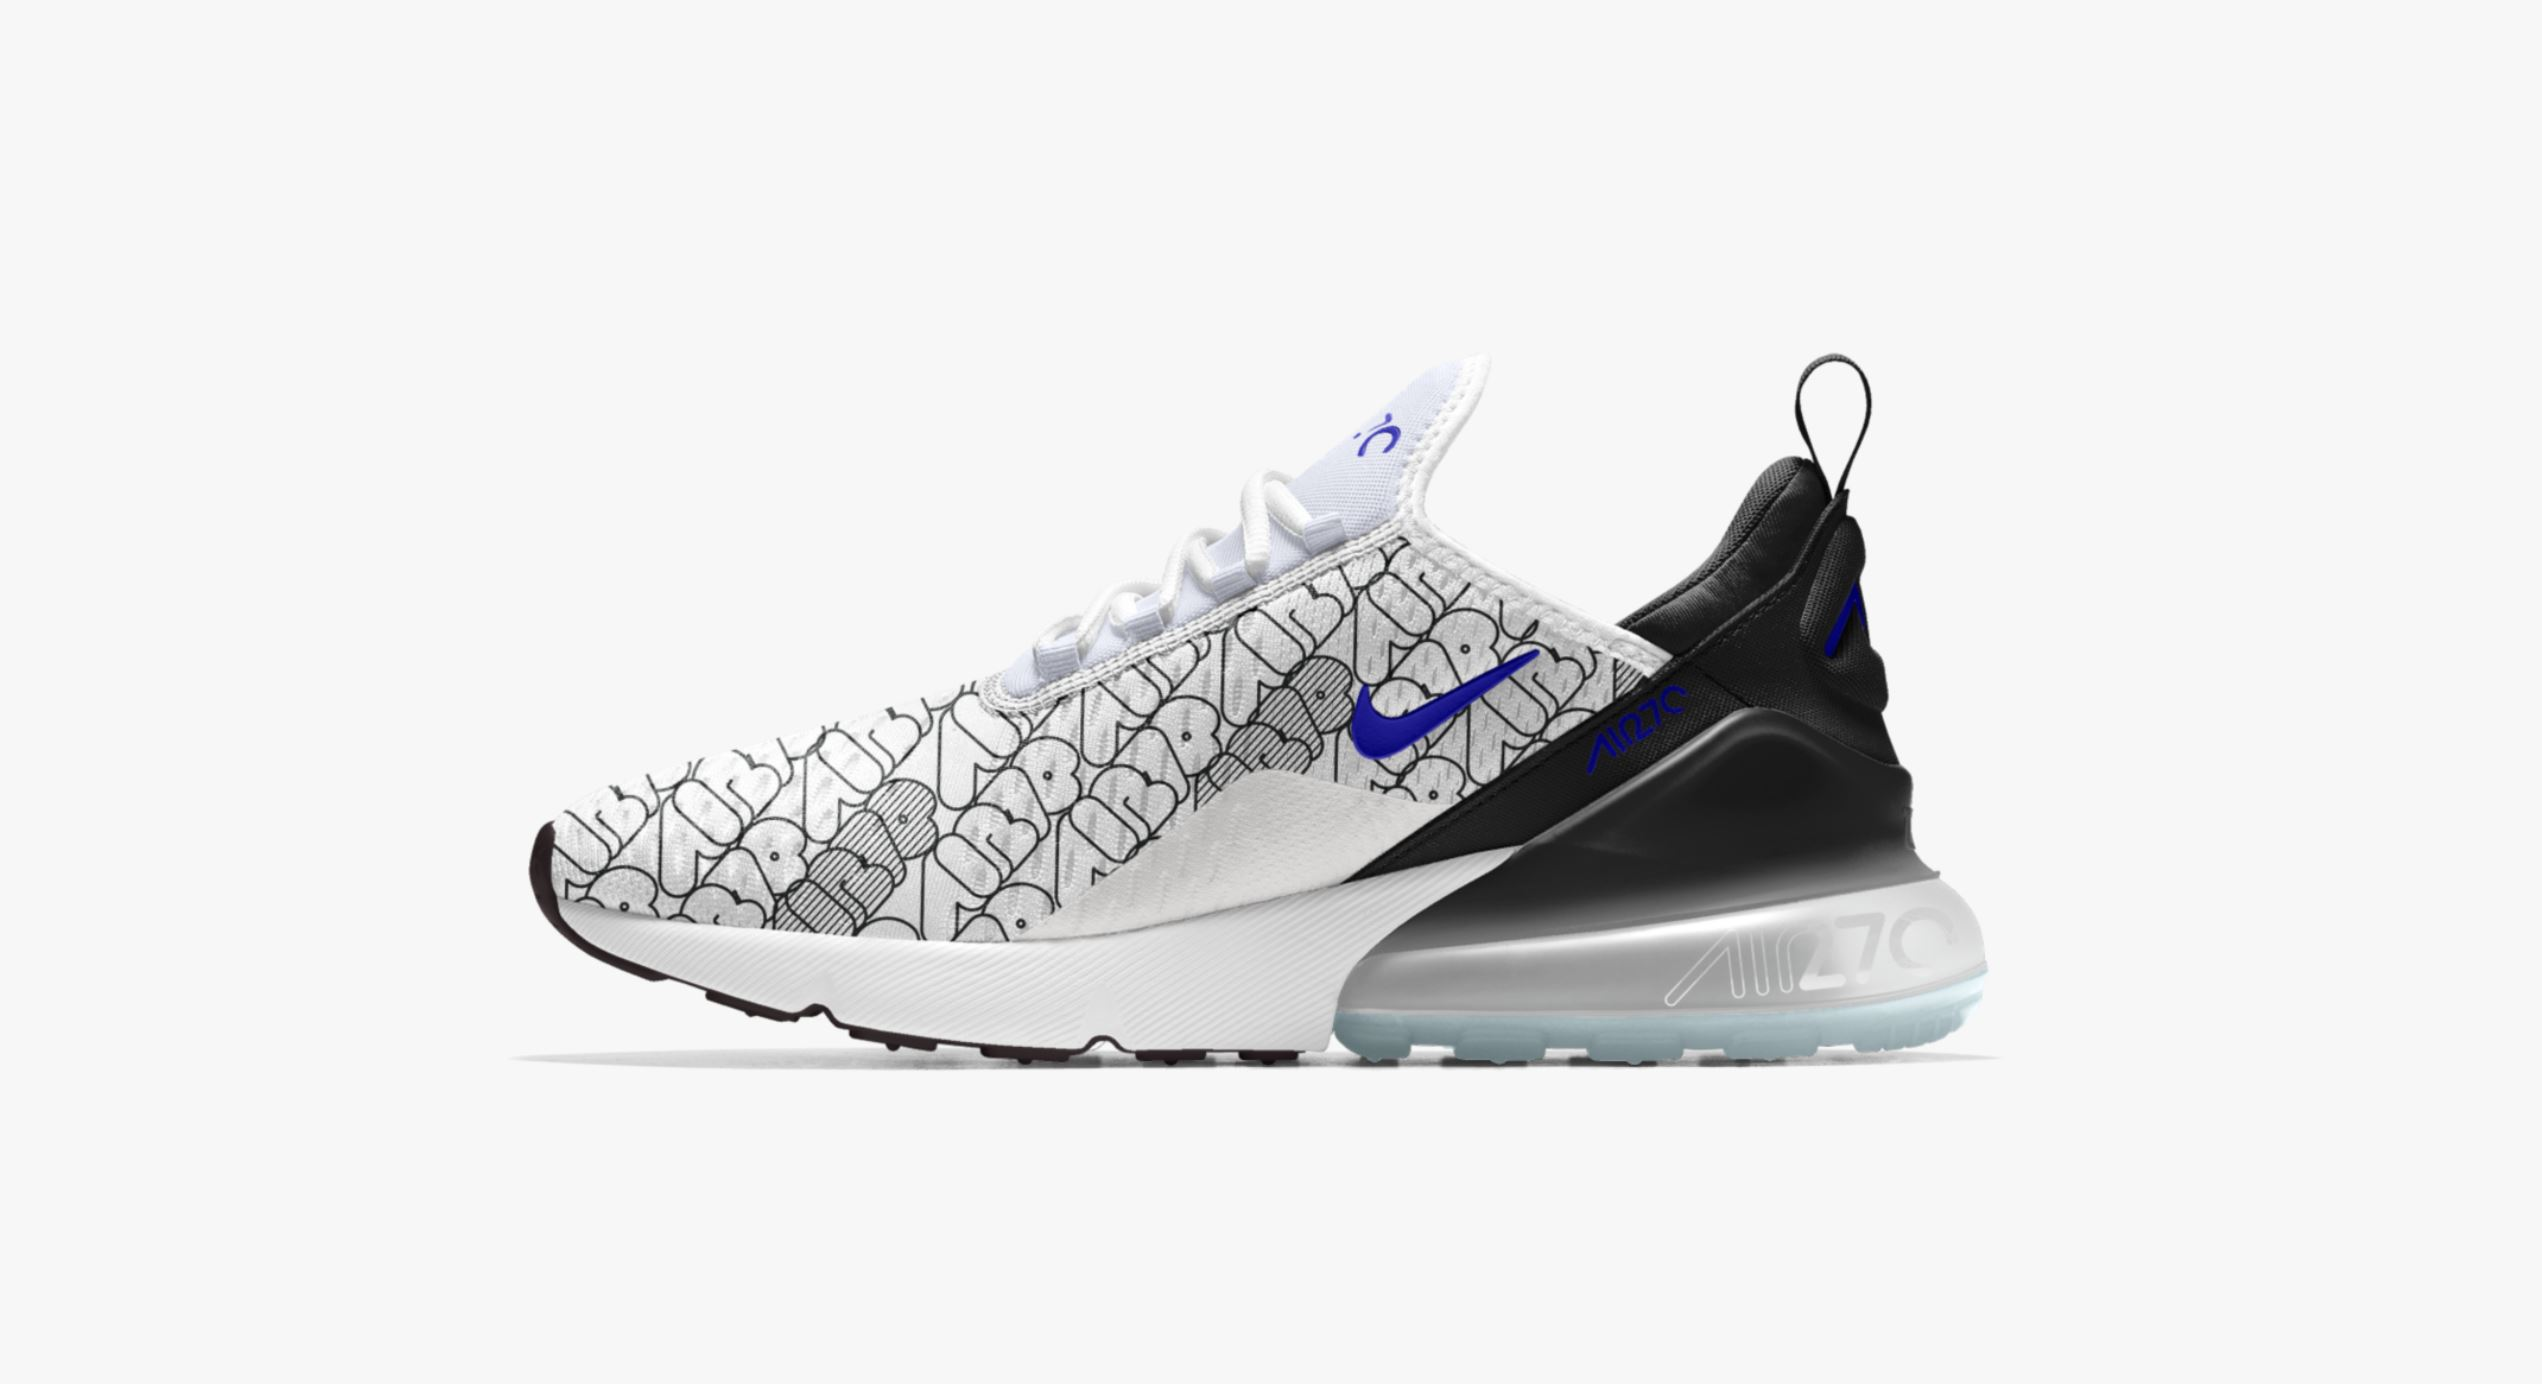 The Nike Air Max 270 Has Hit NikeiD for Customization